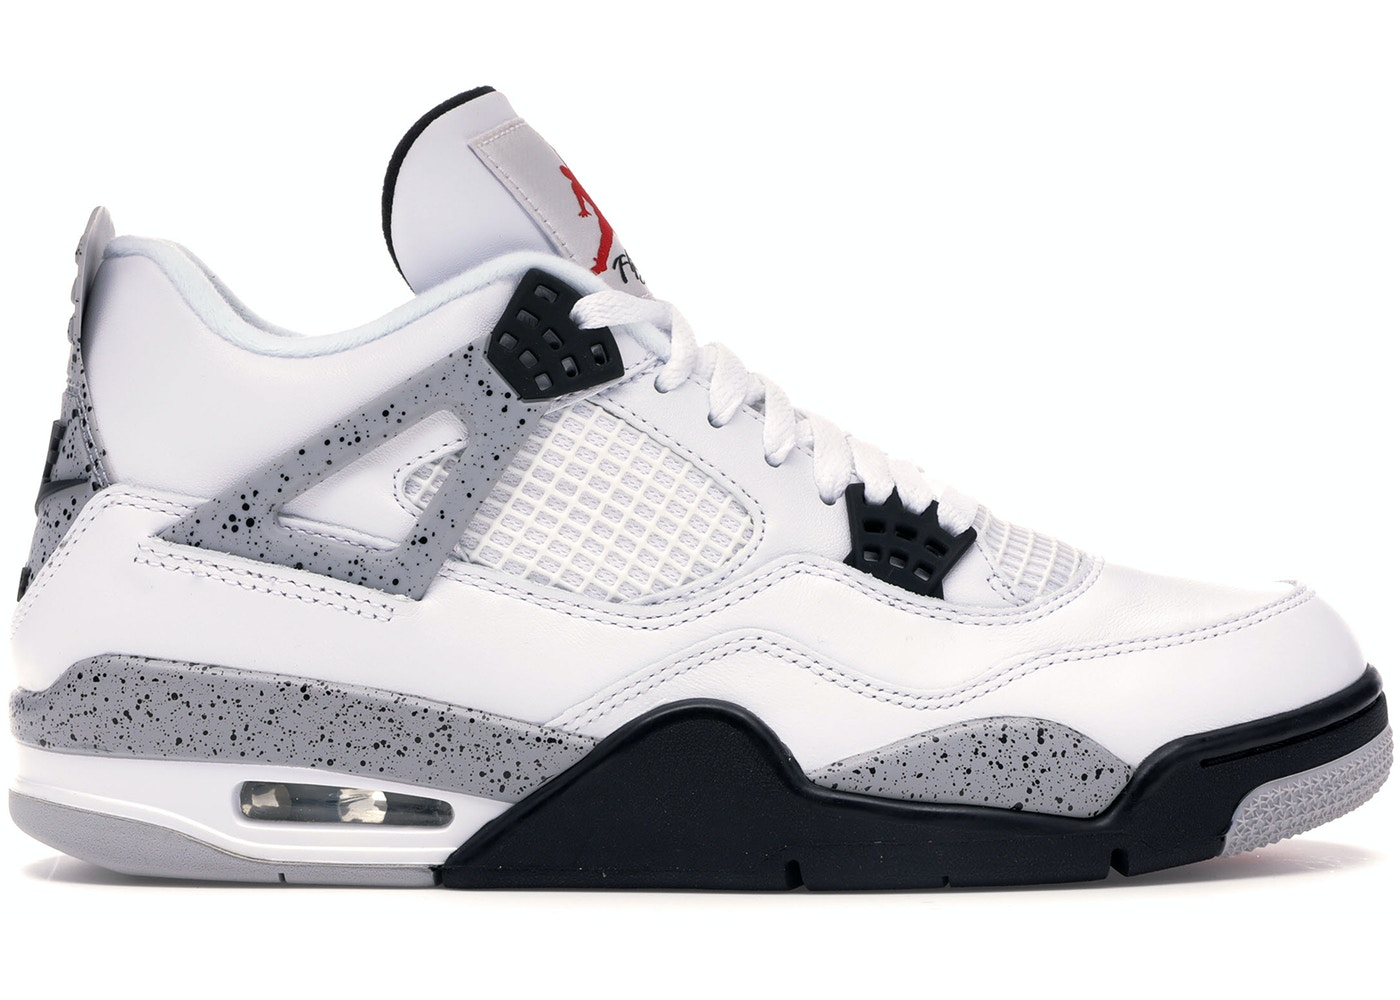 half off f191f 6570a Jordan 4 Retro White Cement (2016)